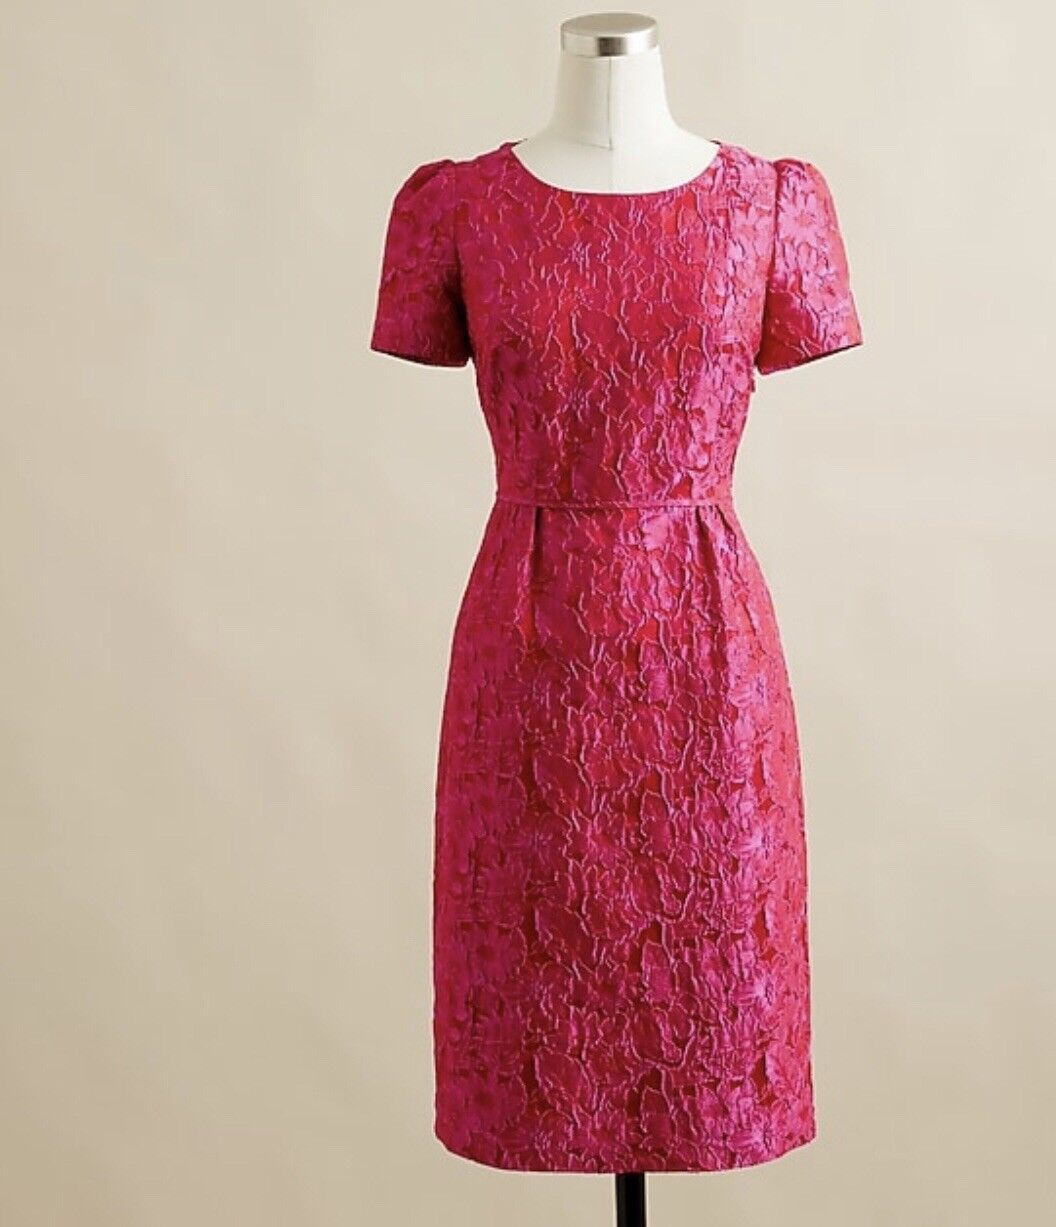 JCREW MARLA DRESS IN GARDENIA JACQUARD - SIZE 00- SOLD SOLD SOLD OUT   be3f88